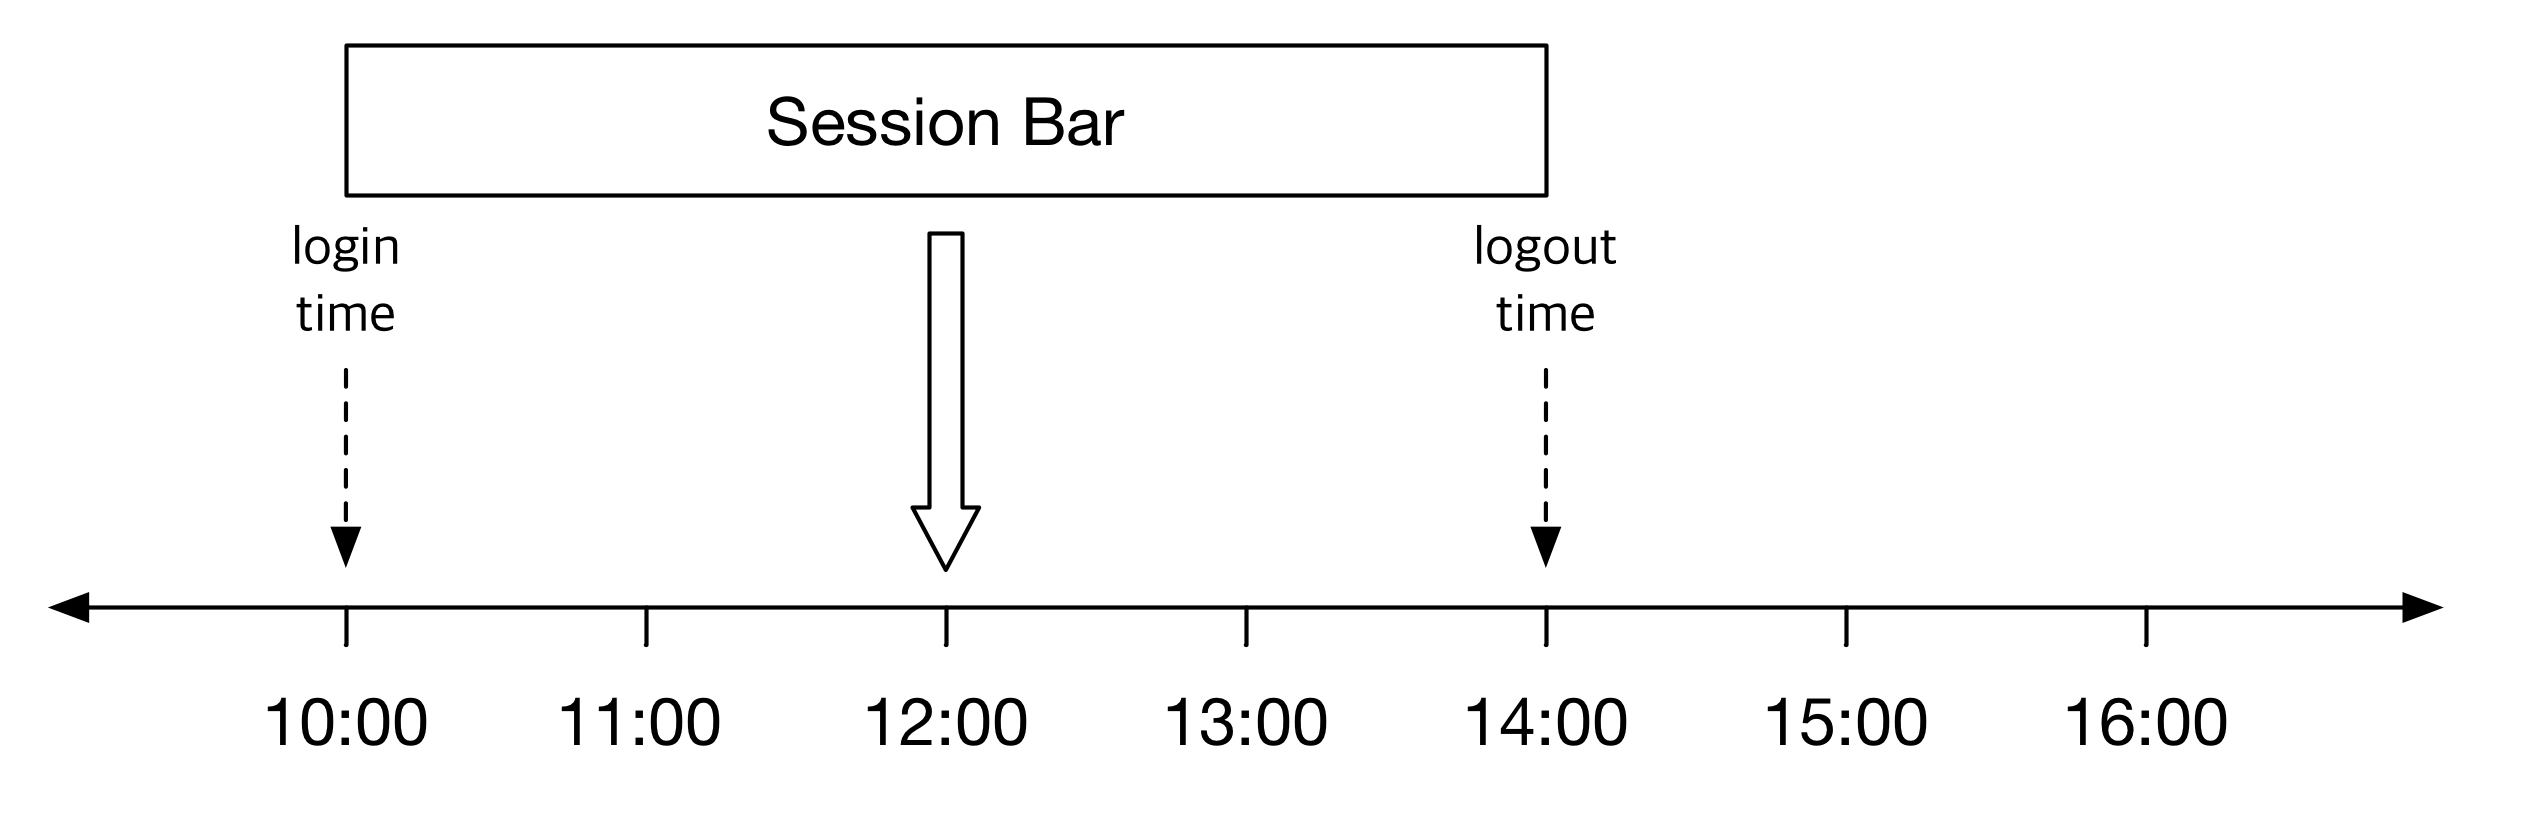 session_bar